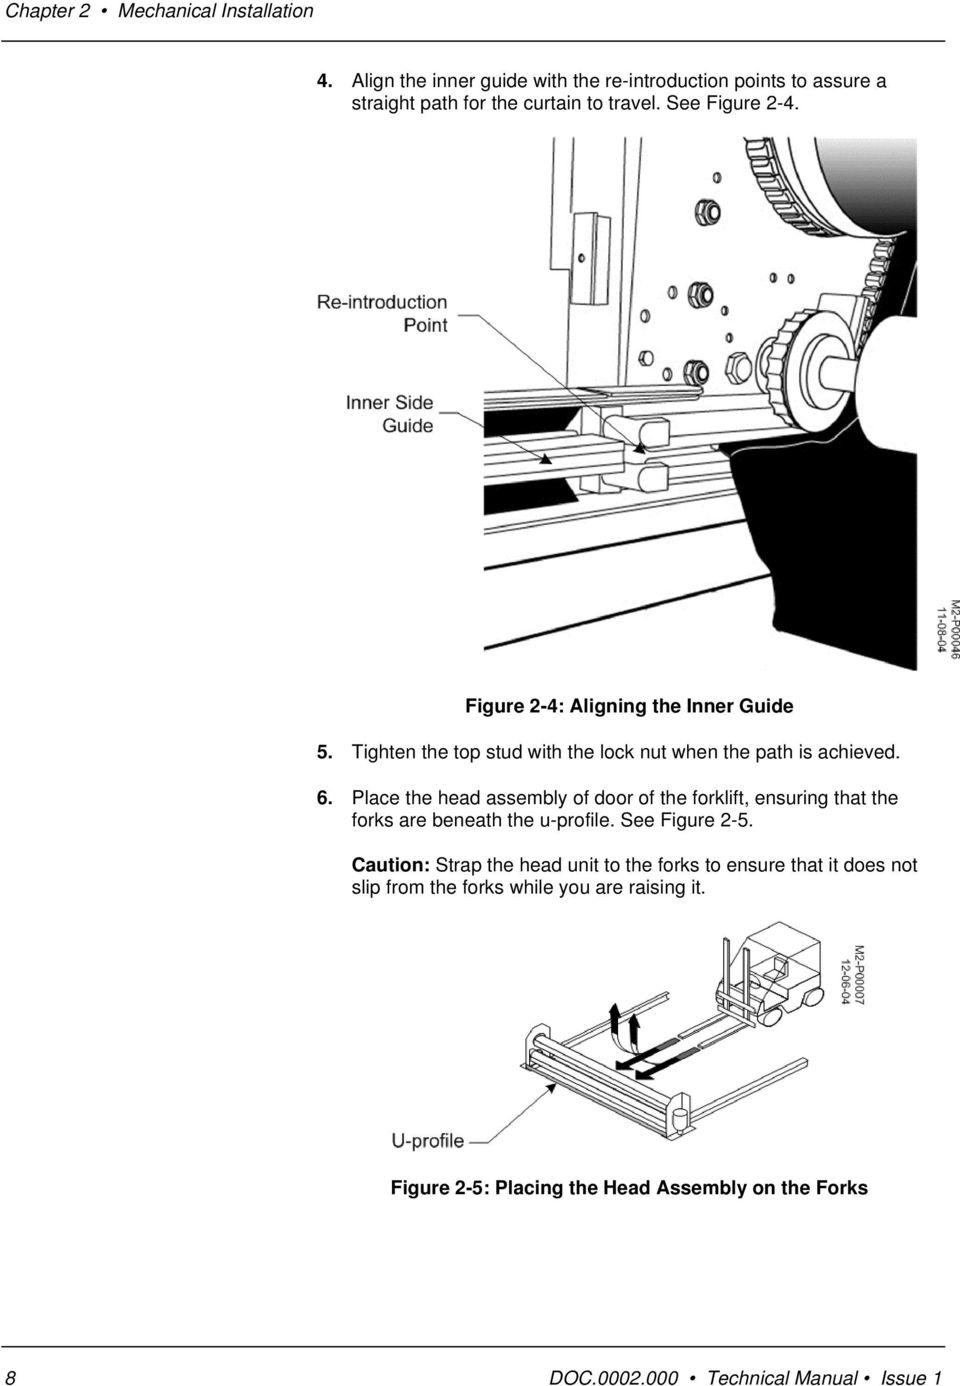 Dynaco Technical Manual Pdf Yale Forklift Wiring Diagram On Telephone Box View Issue 1 Place The Head Assembly Of Door Ensuring That Forks Are Beneath